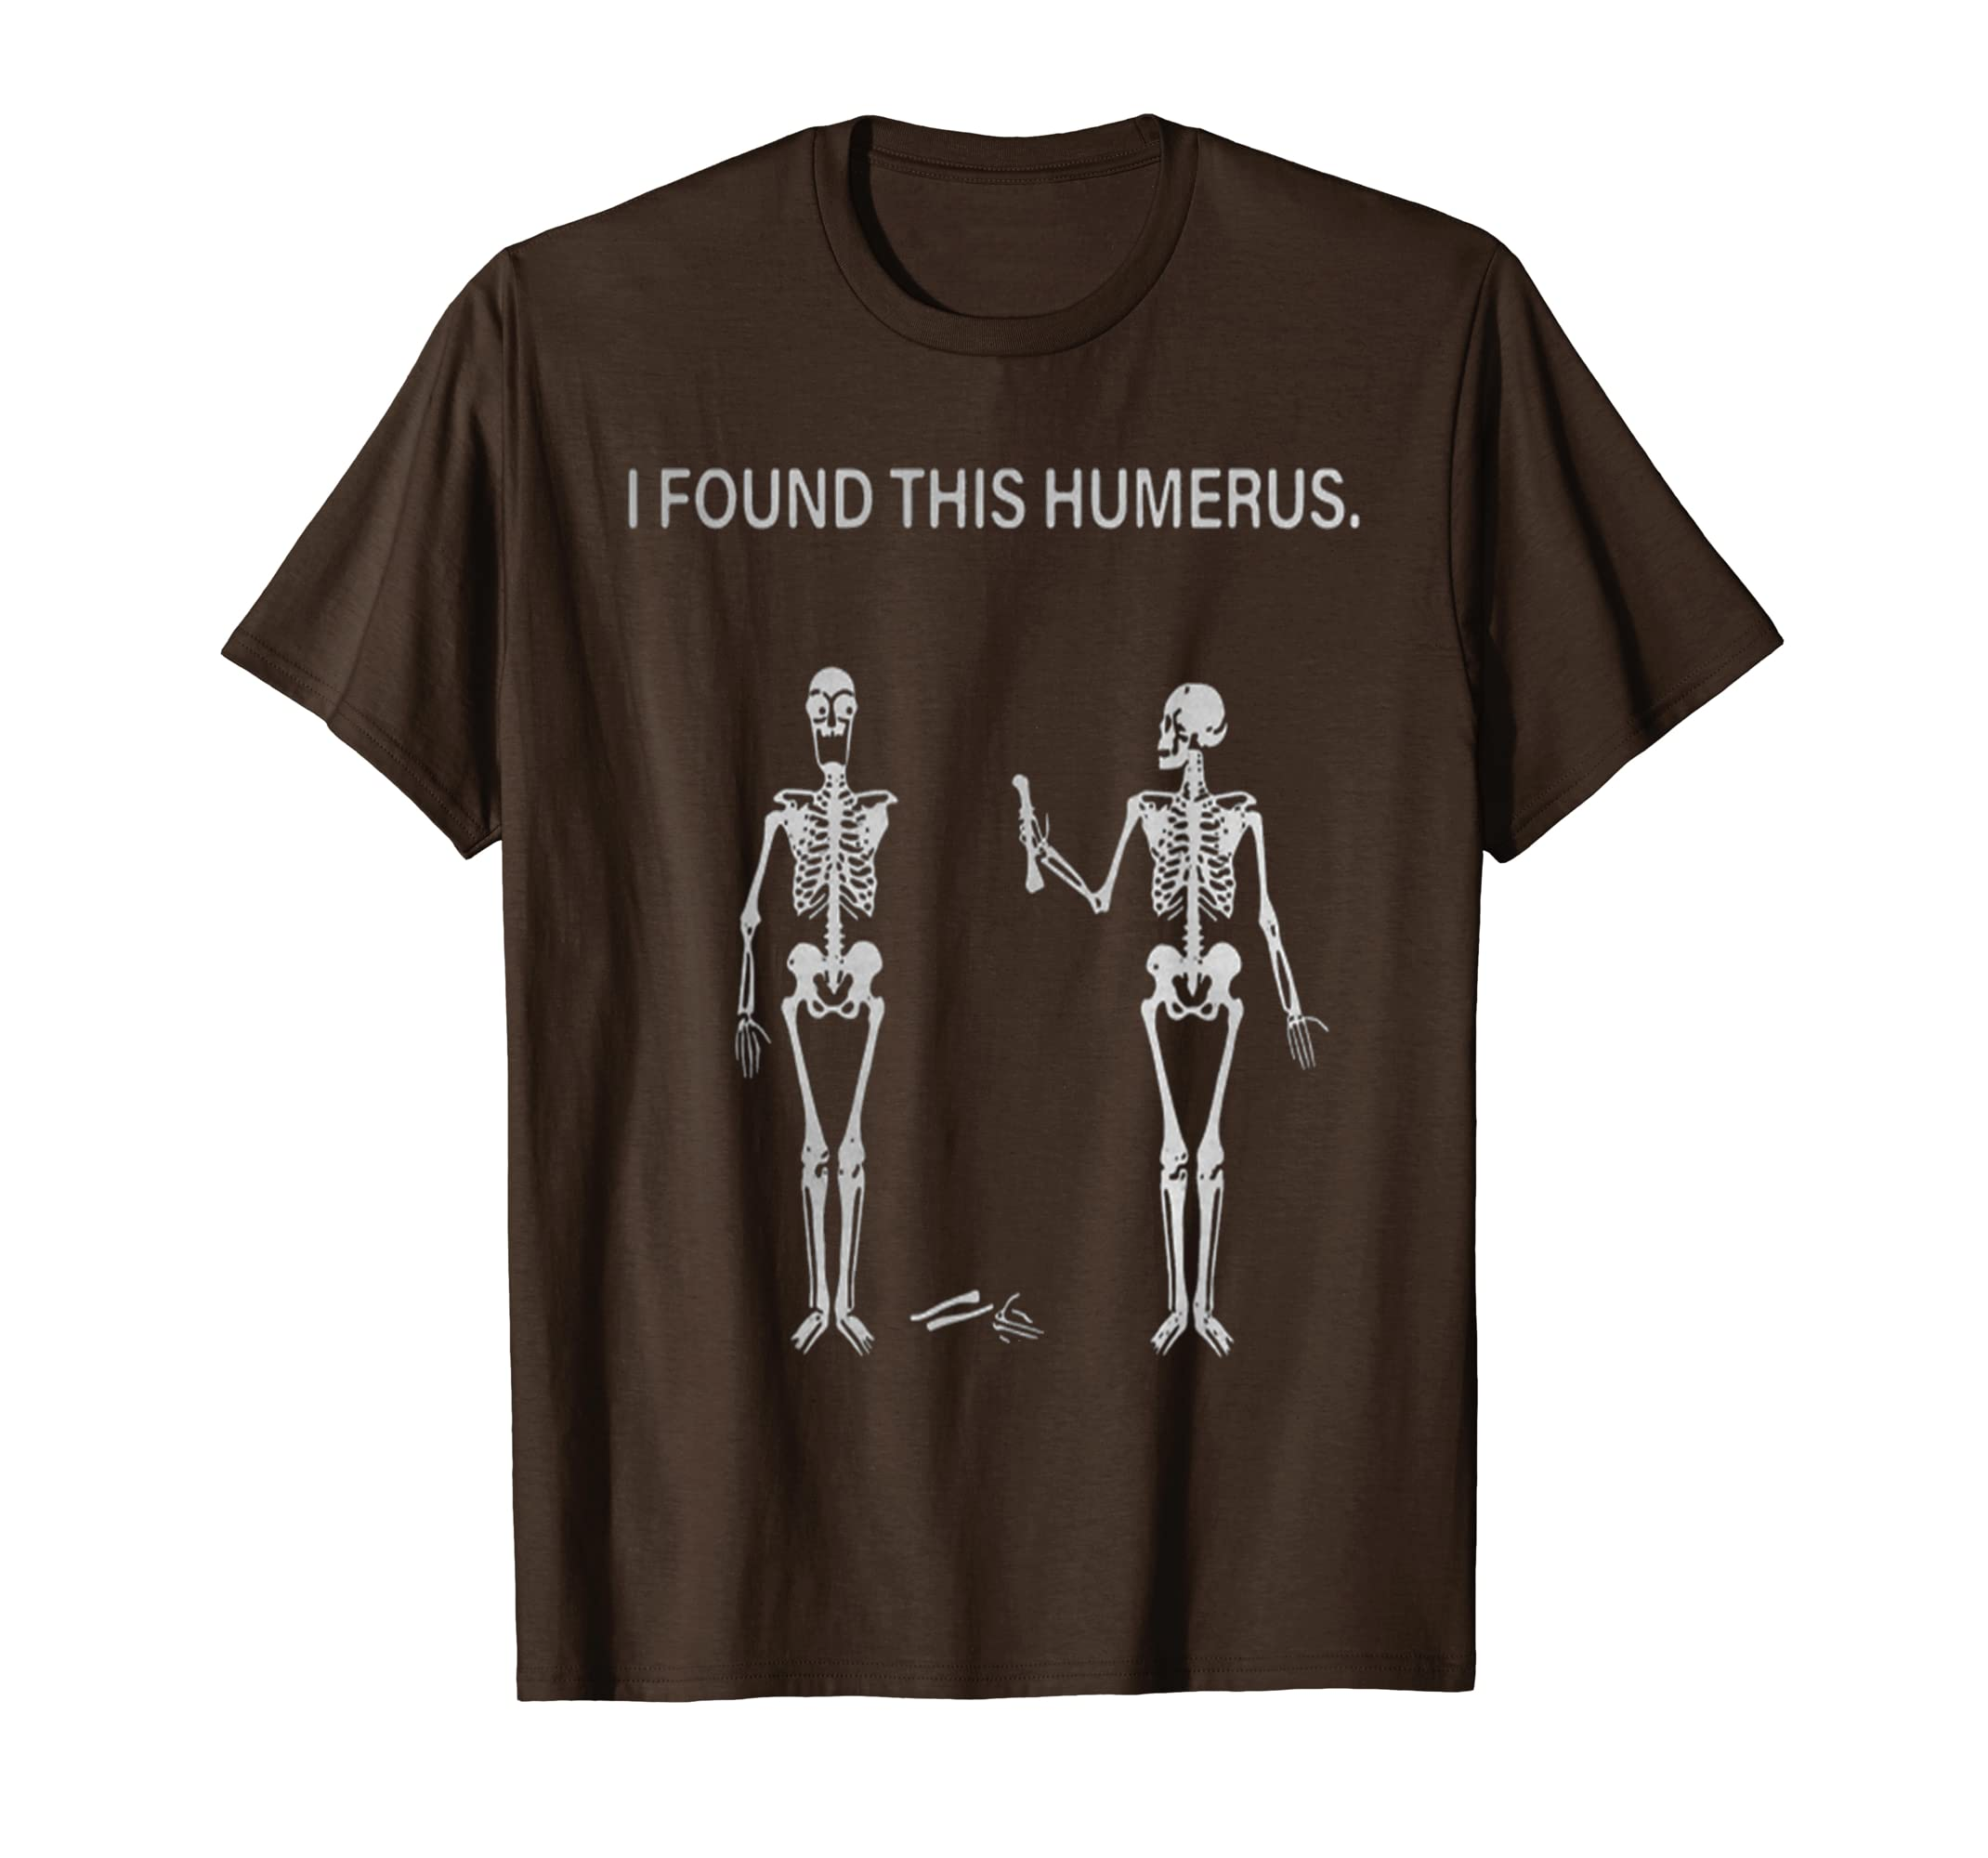 1a628b5f Amazon.com: Skeleton I found this humerus shirt: Clothing